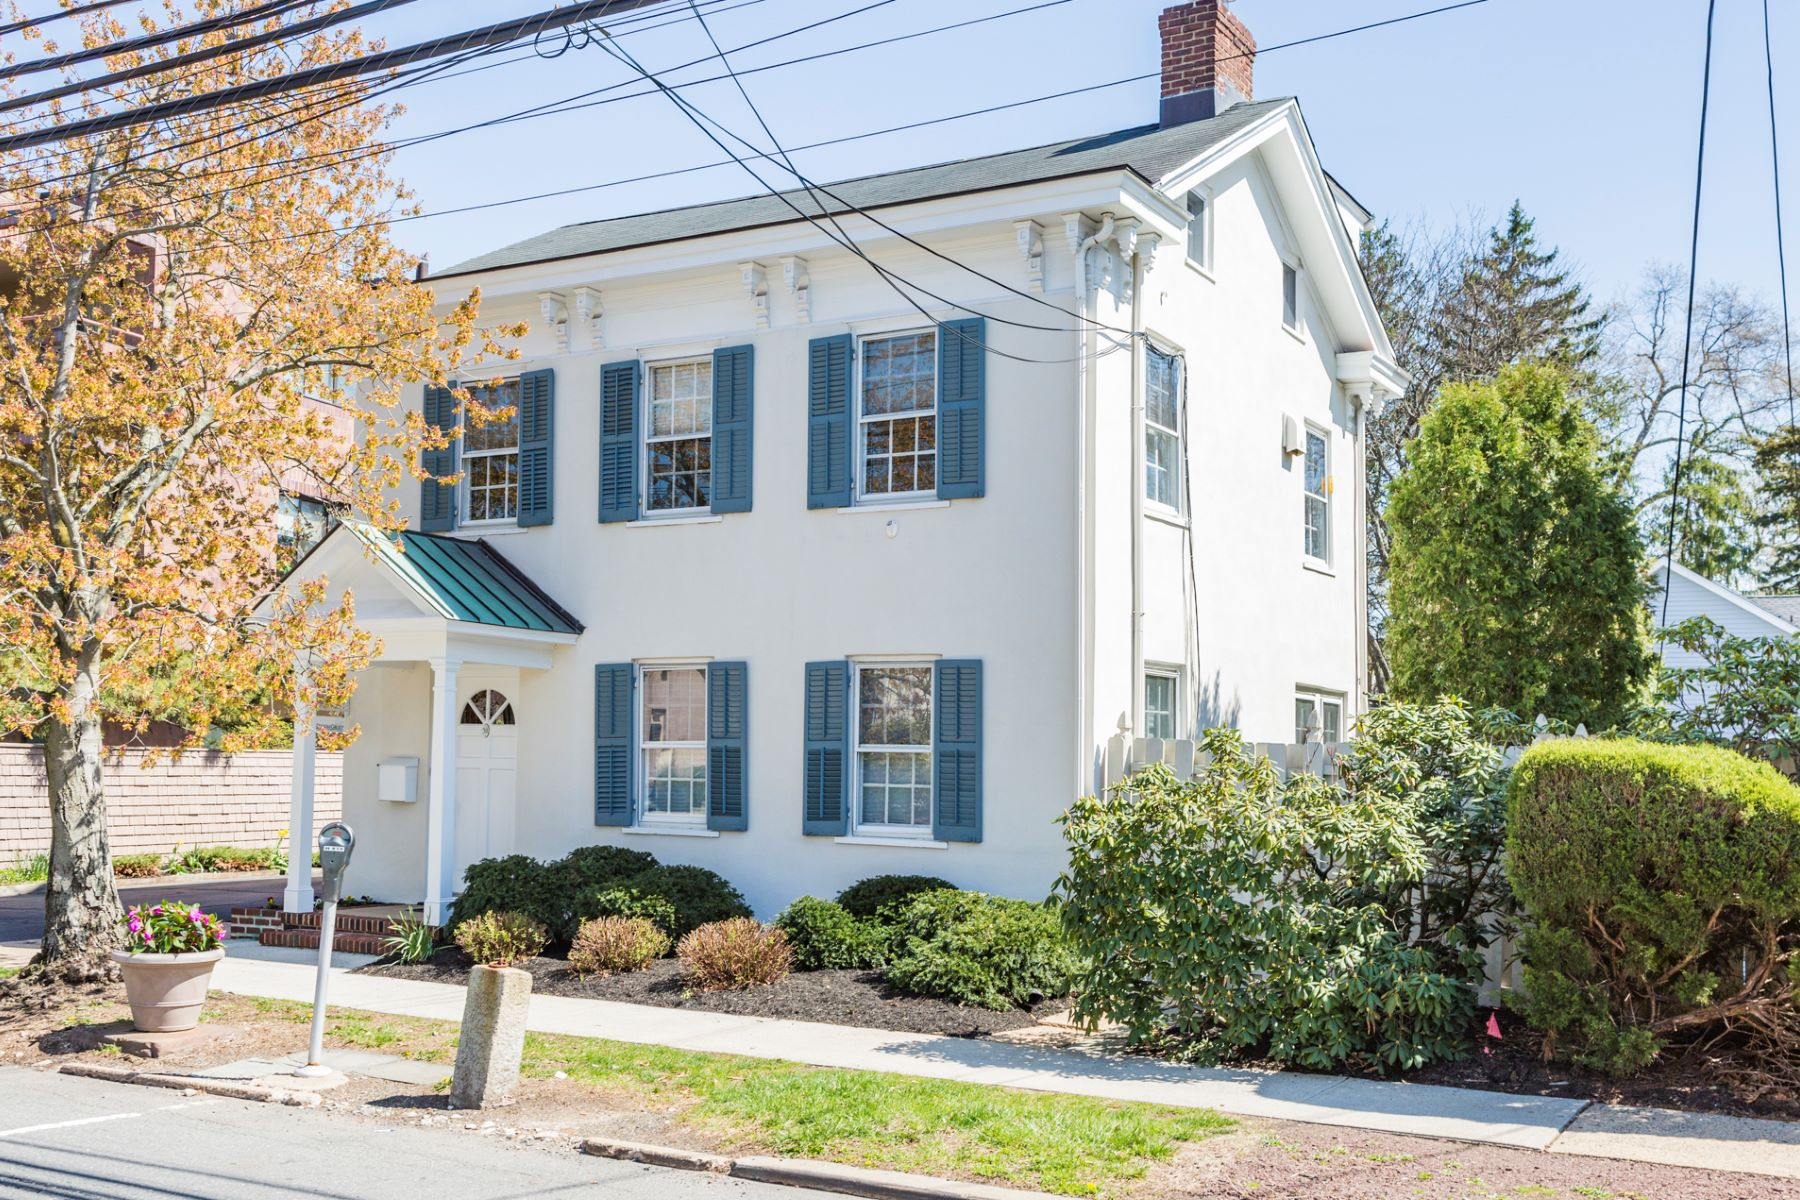 Maison unifamiliale pour l Vente à Work/Live with Beautiful Flexibility in Town 361 Nassau Street Princeton, New Jersey, 08540 États-Unis